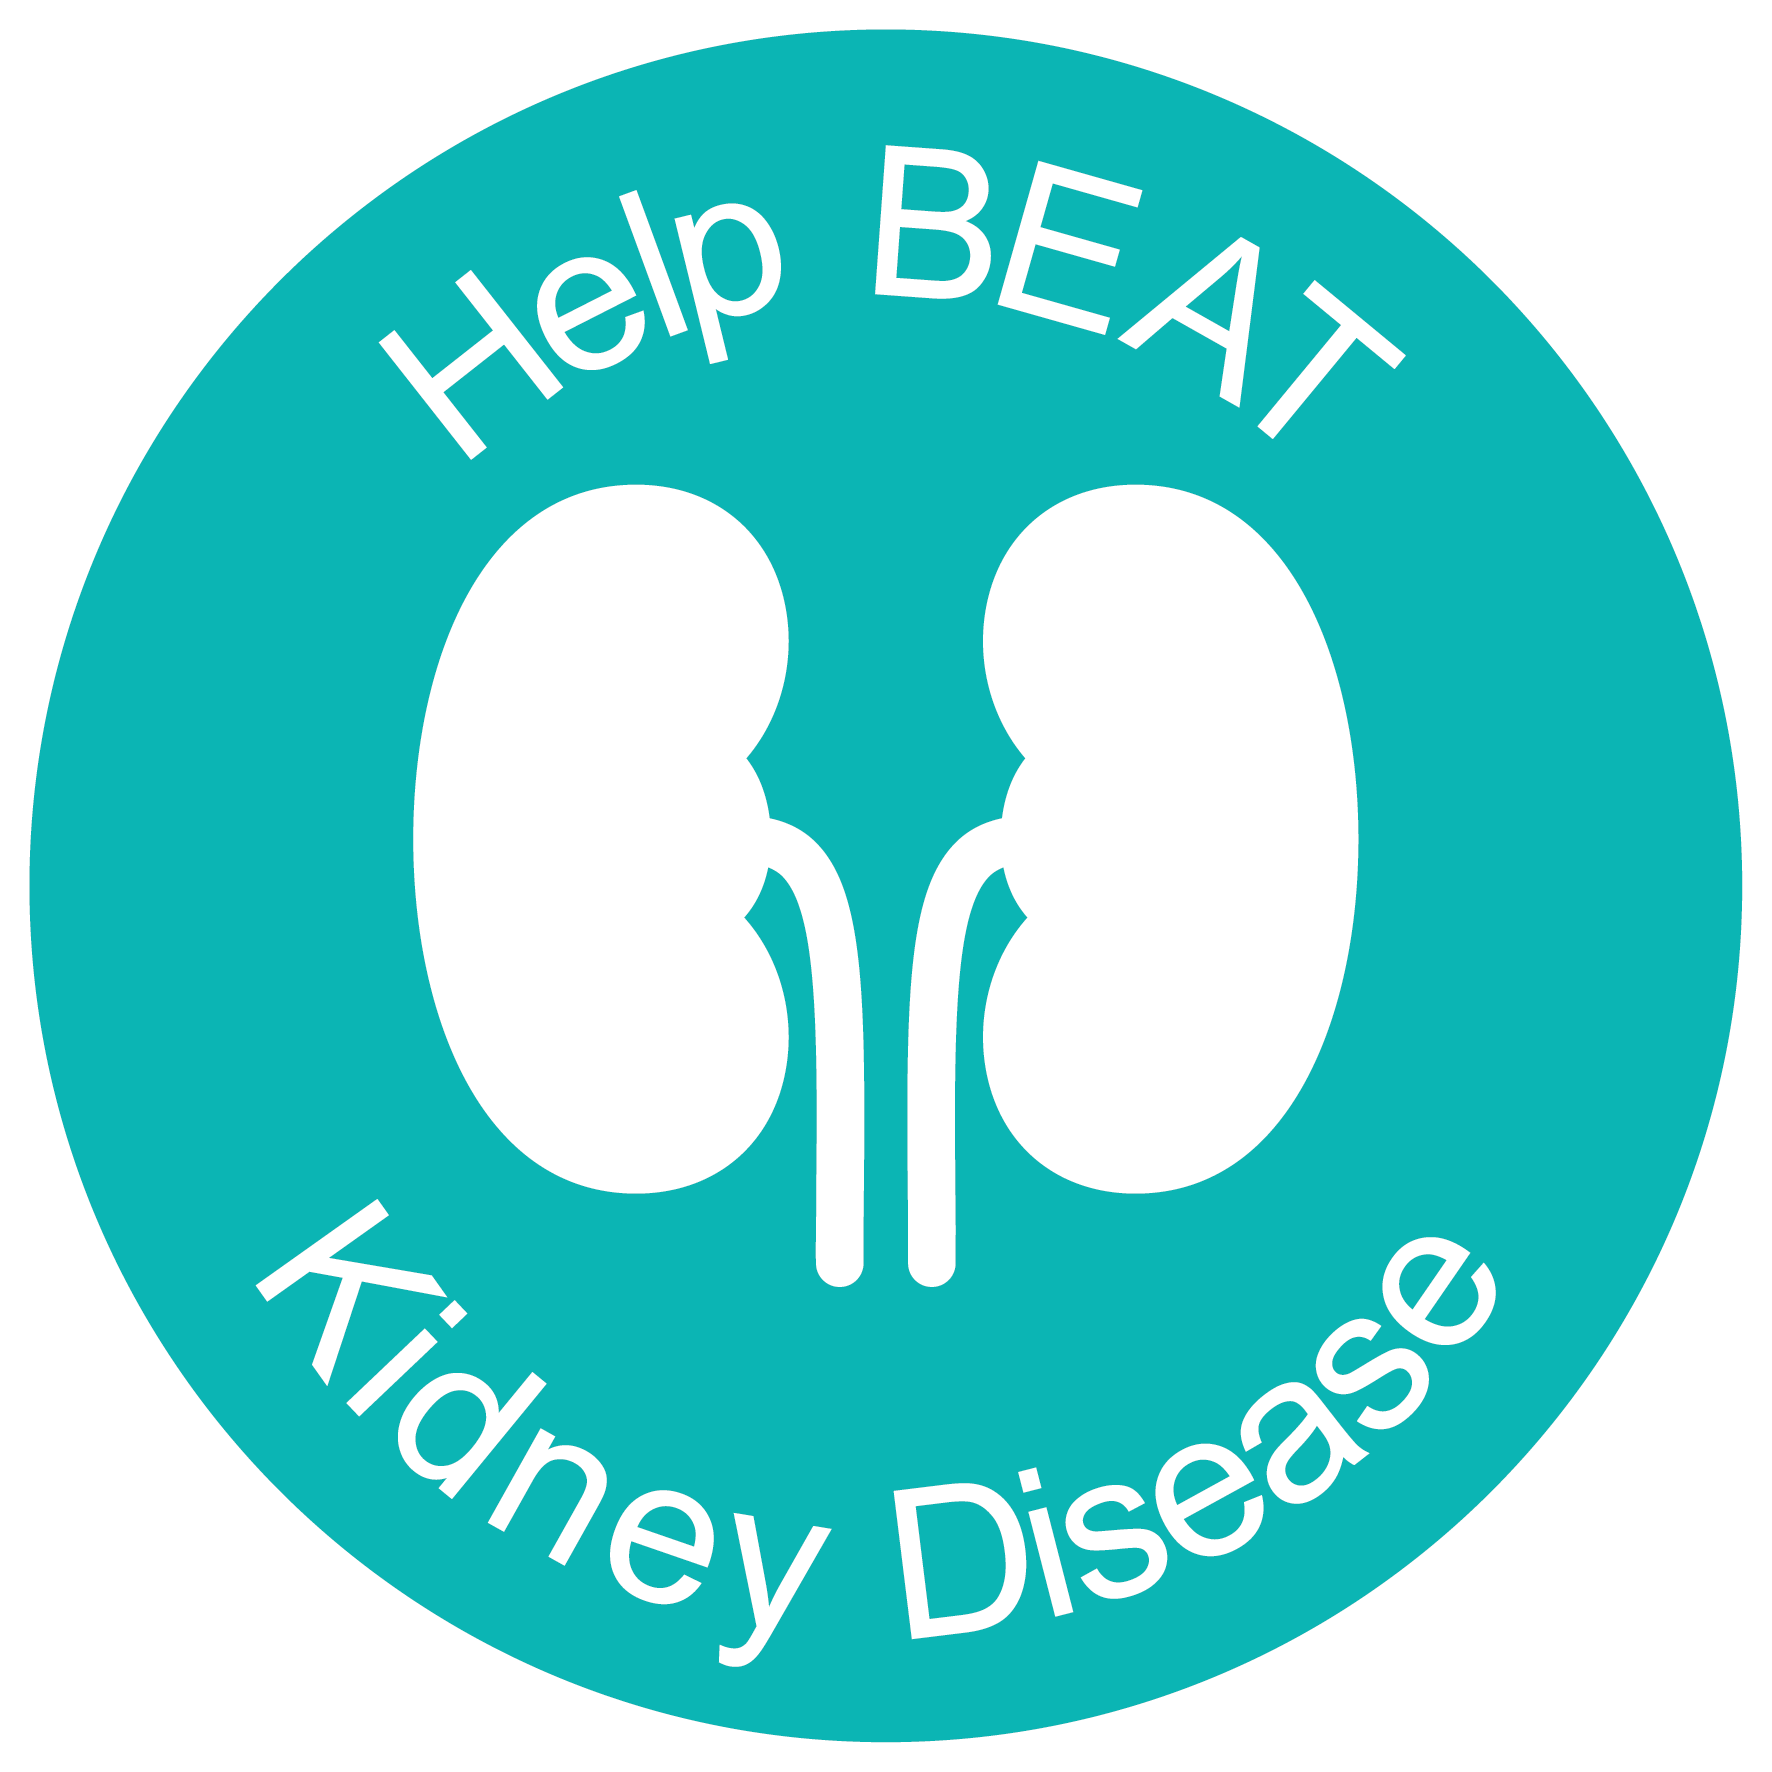 Help BEAT Kidney Disease Logo